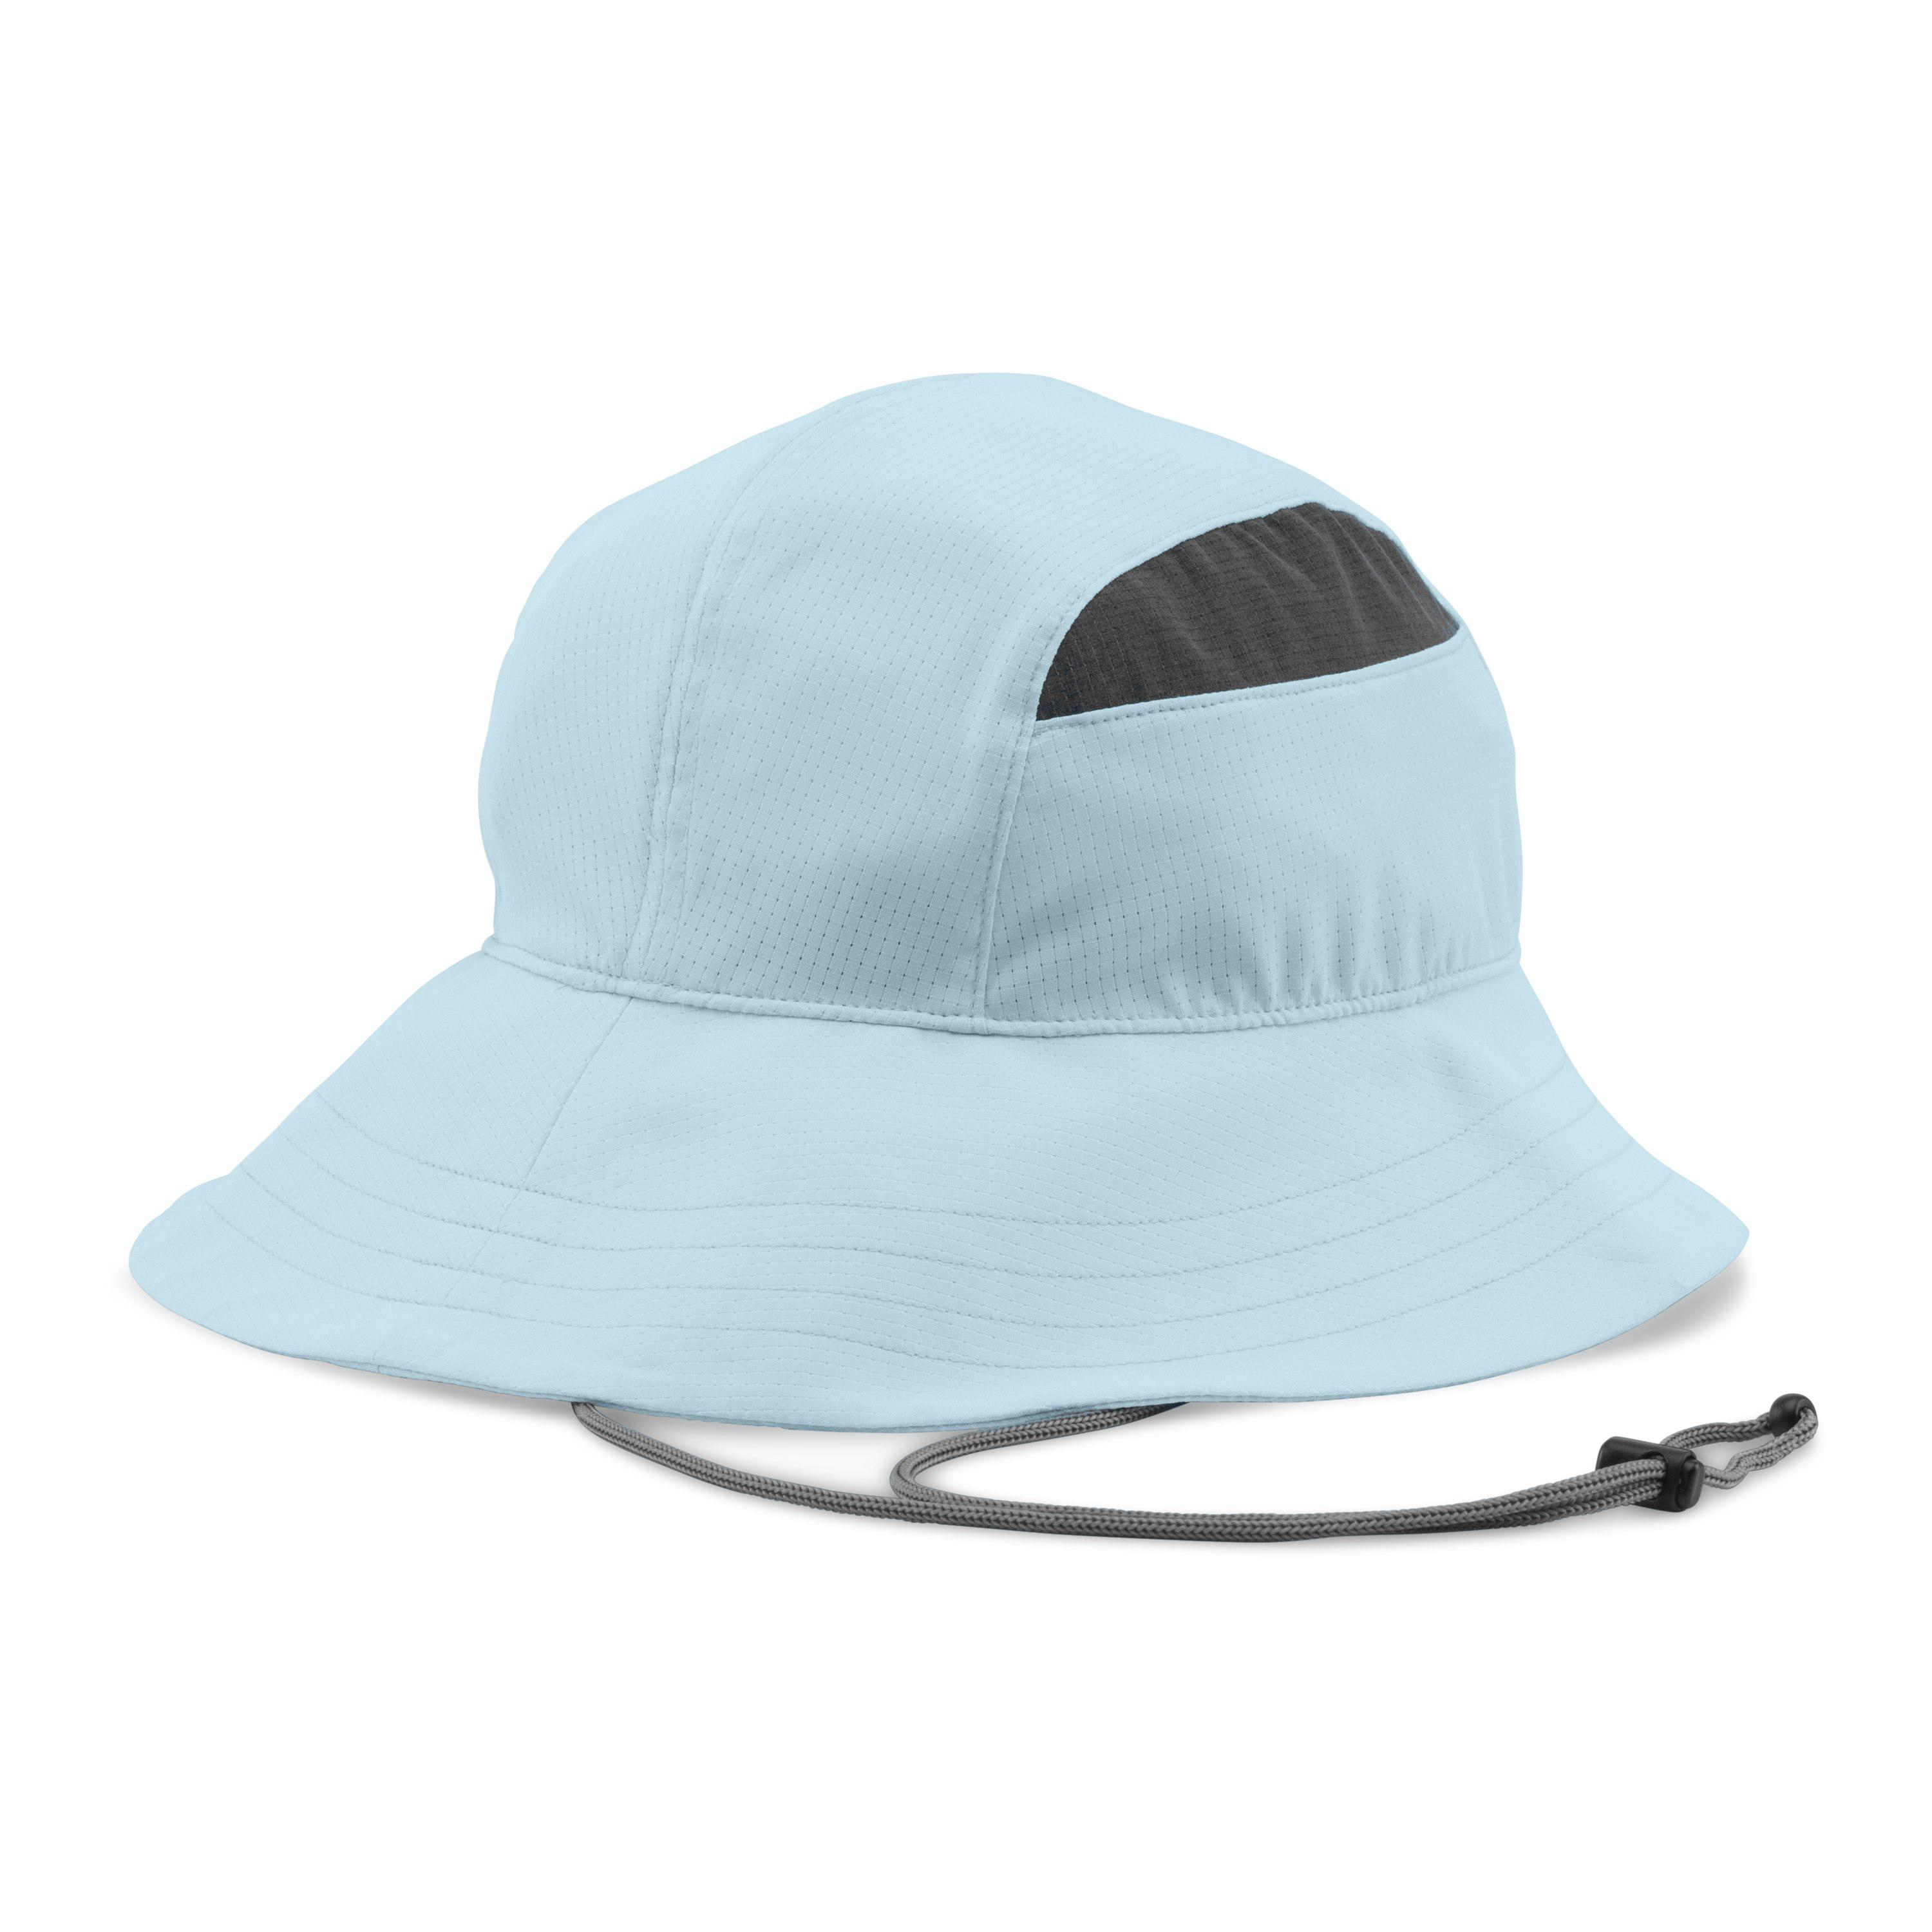 2315346a8e8 Lyst - Under Armour Men s Ua Coolswitch Armourvent™ Bucket Hat in ...